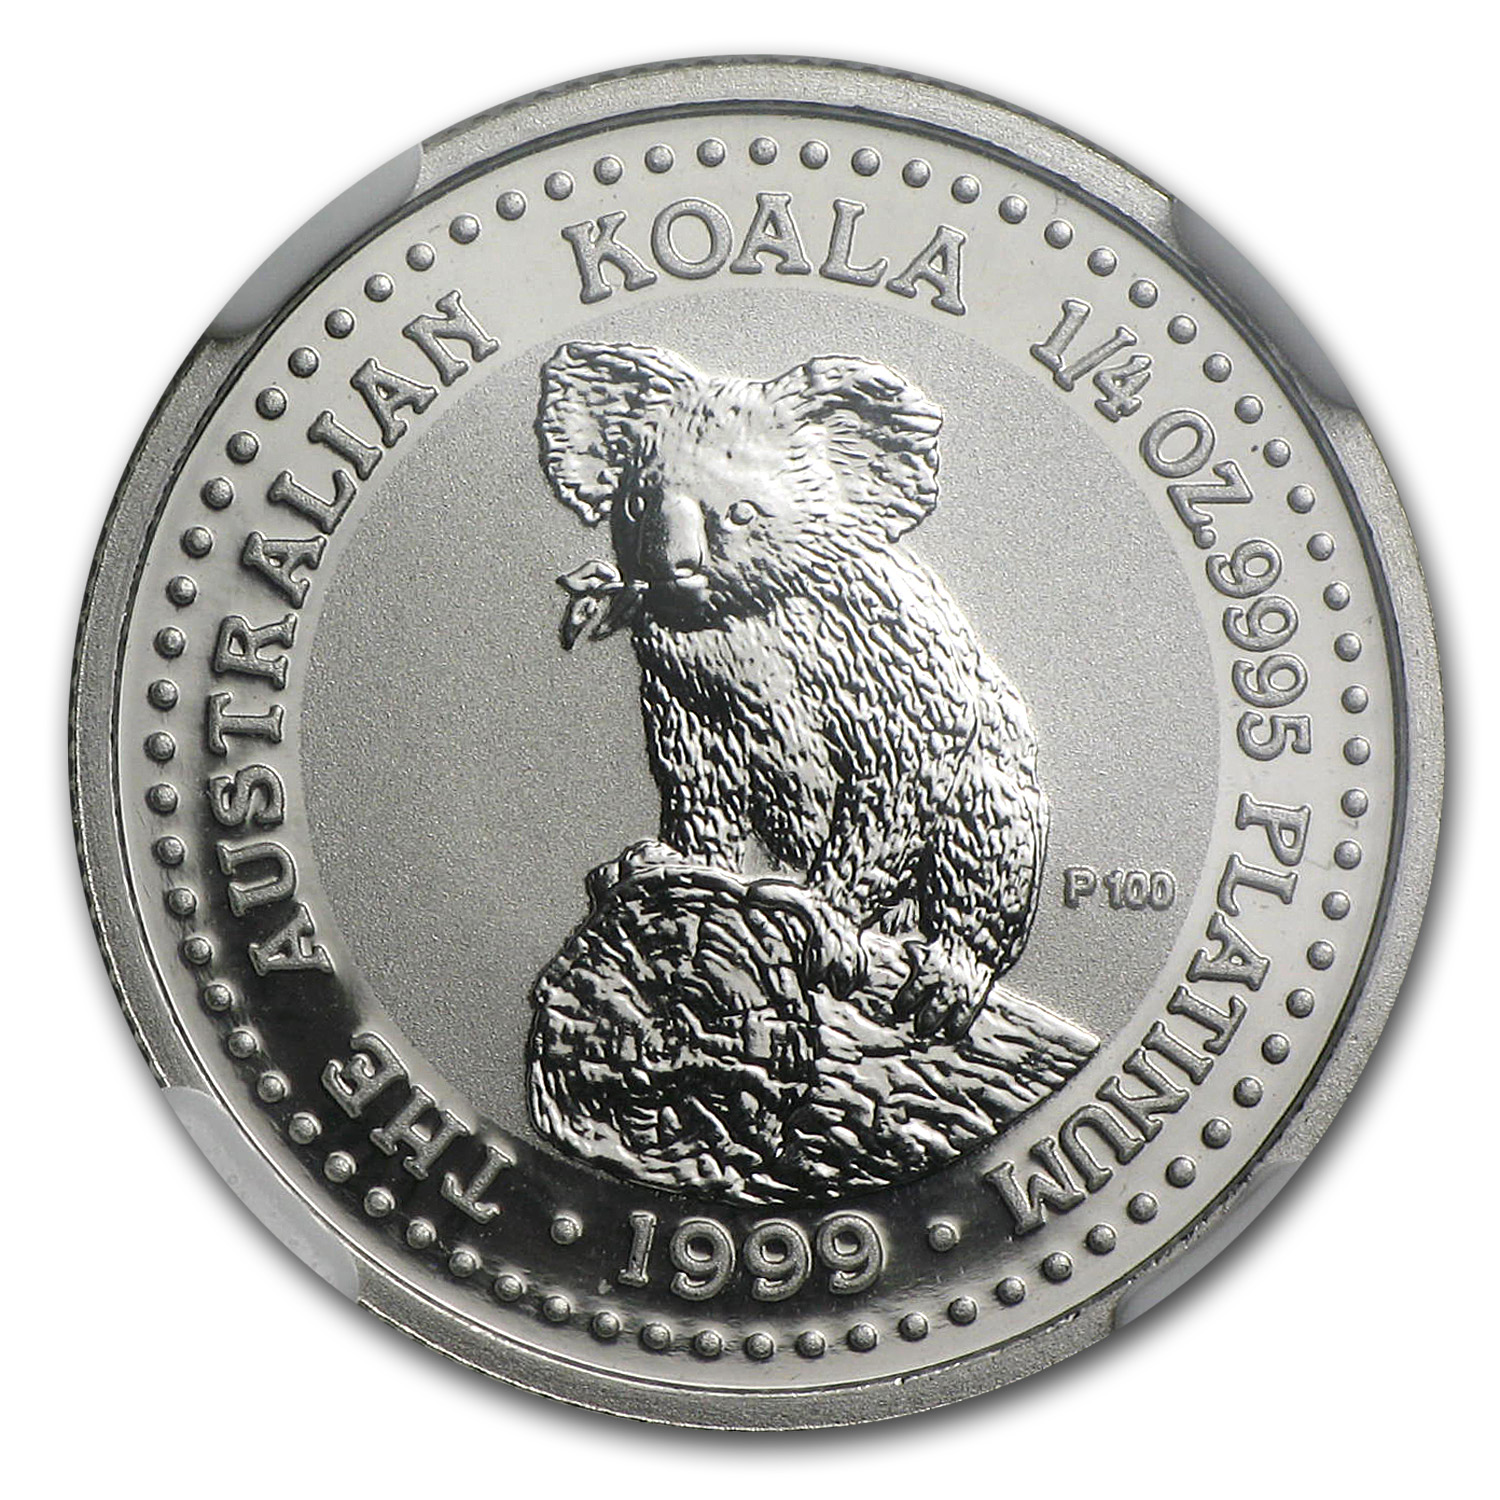 1999 1/4 oz Australian Platinum Koala MS-70 NGC (Registry Set)